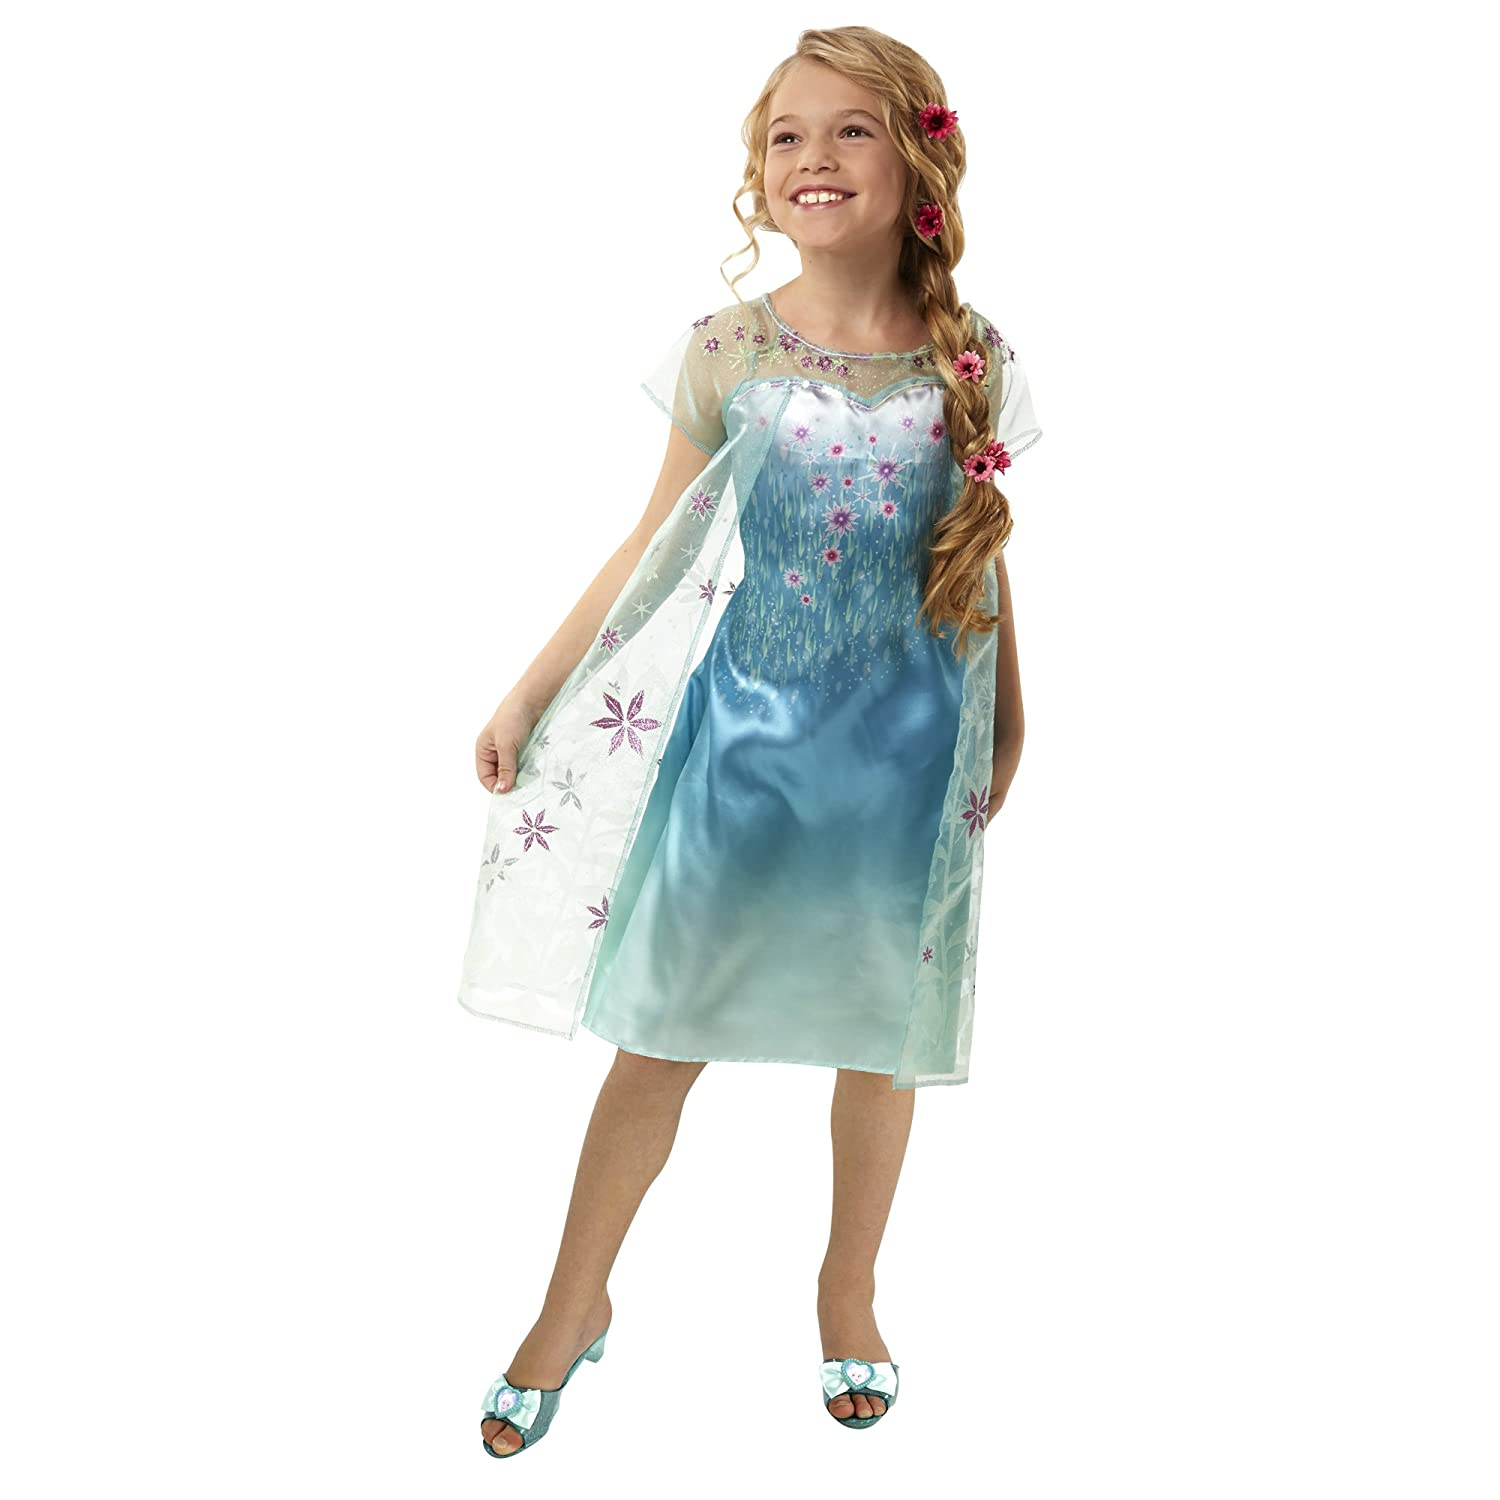 Disney Frozen Fever Elsa Dress